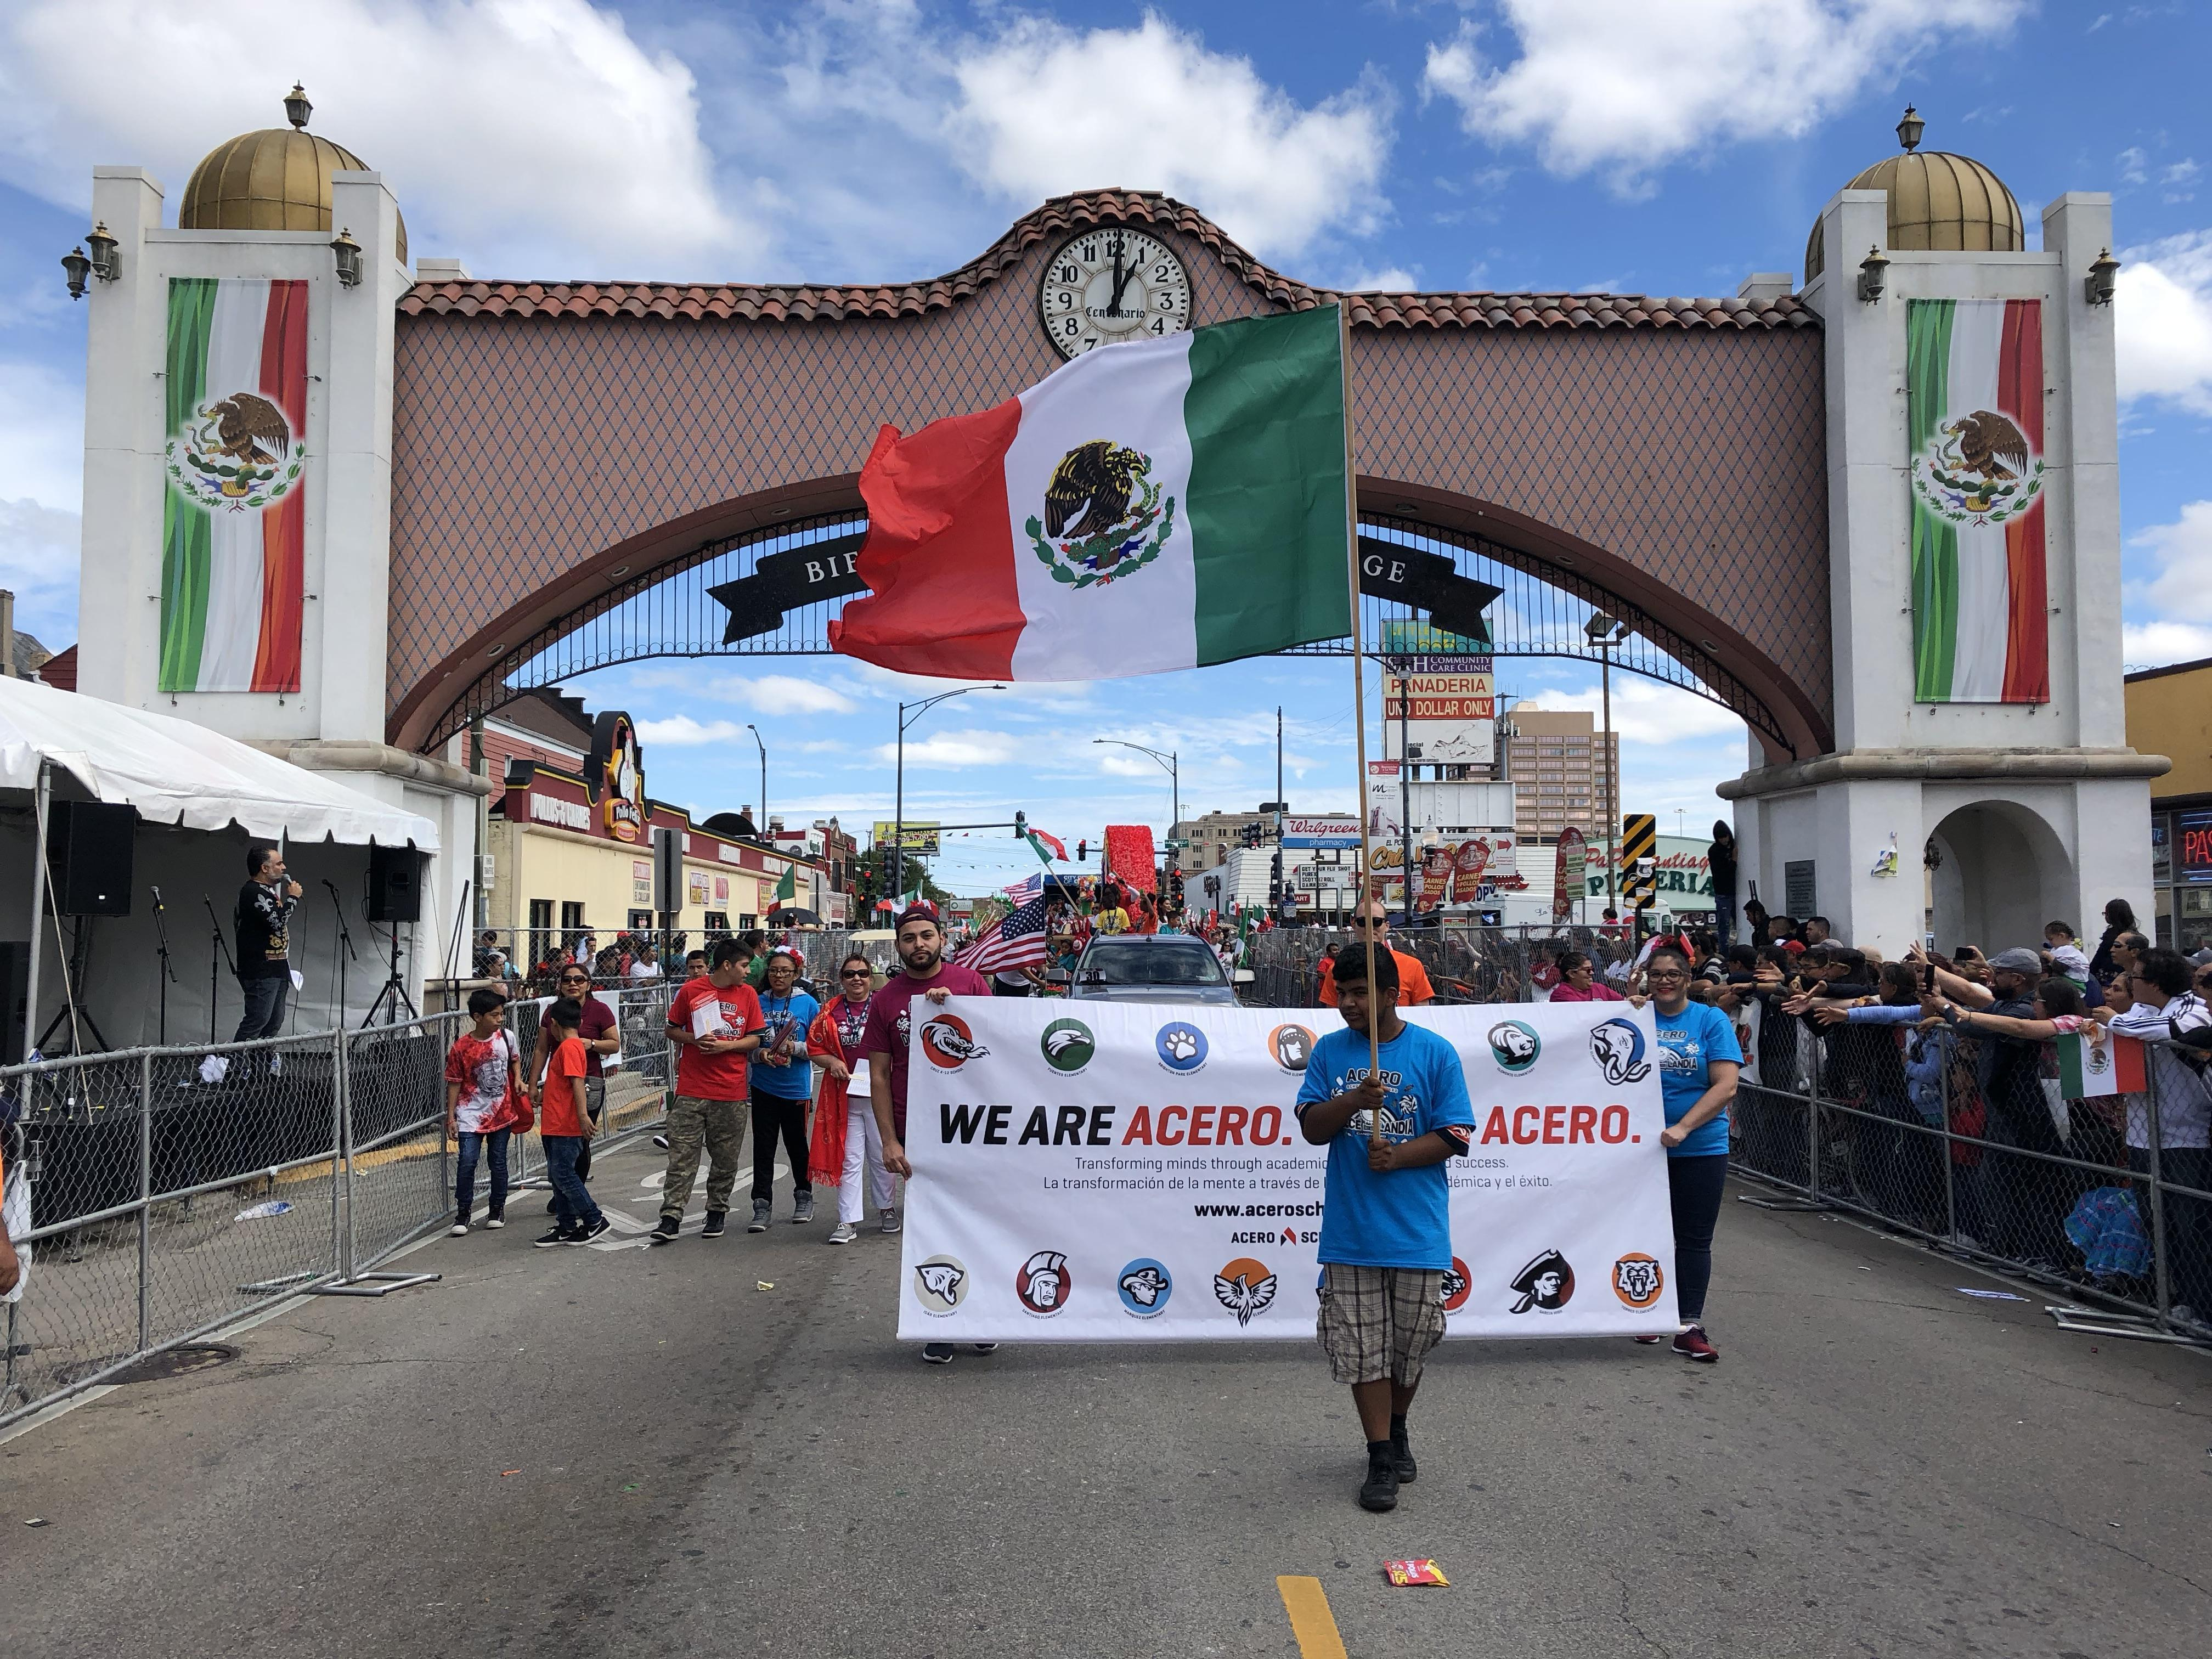 Mexican Day Parade with Acero Banner